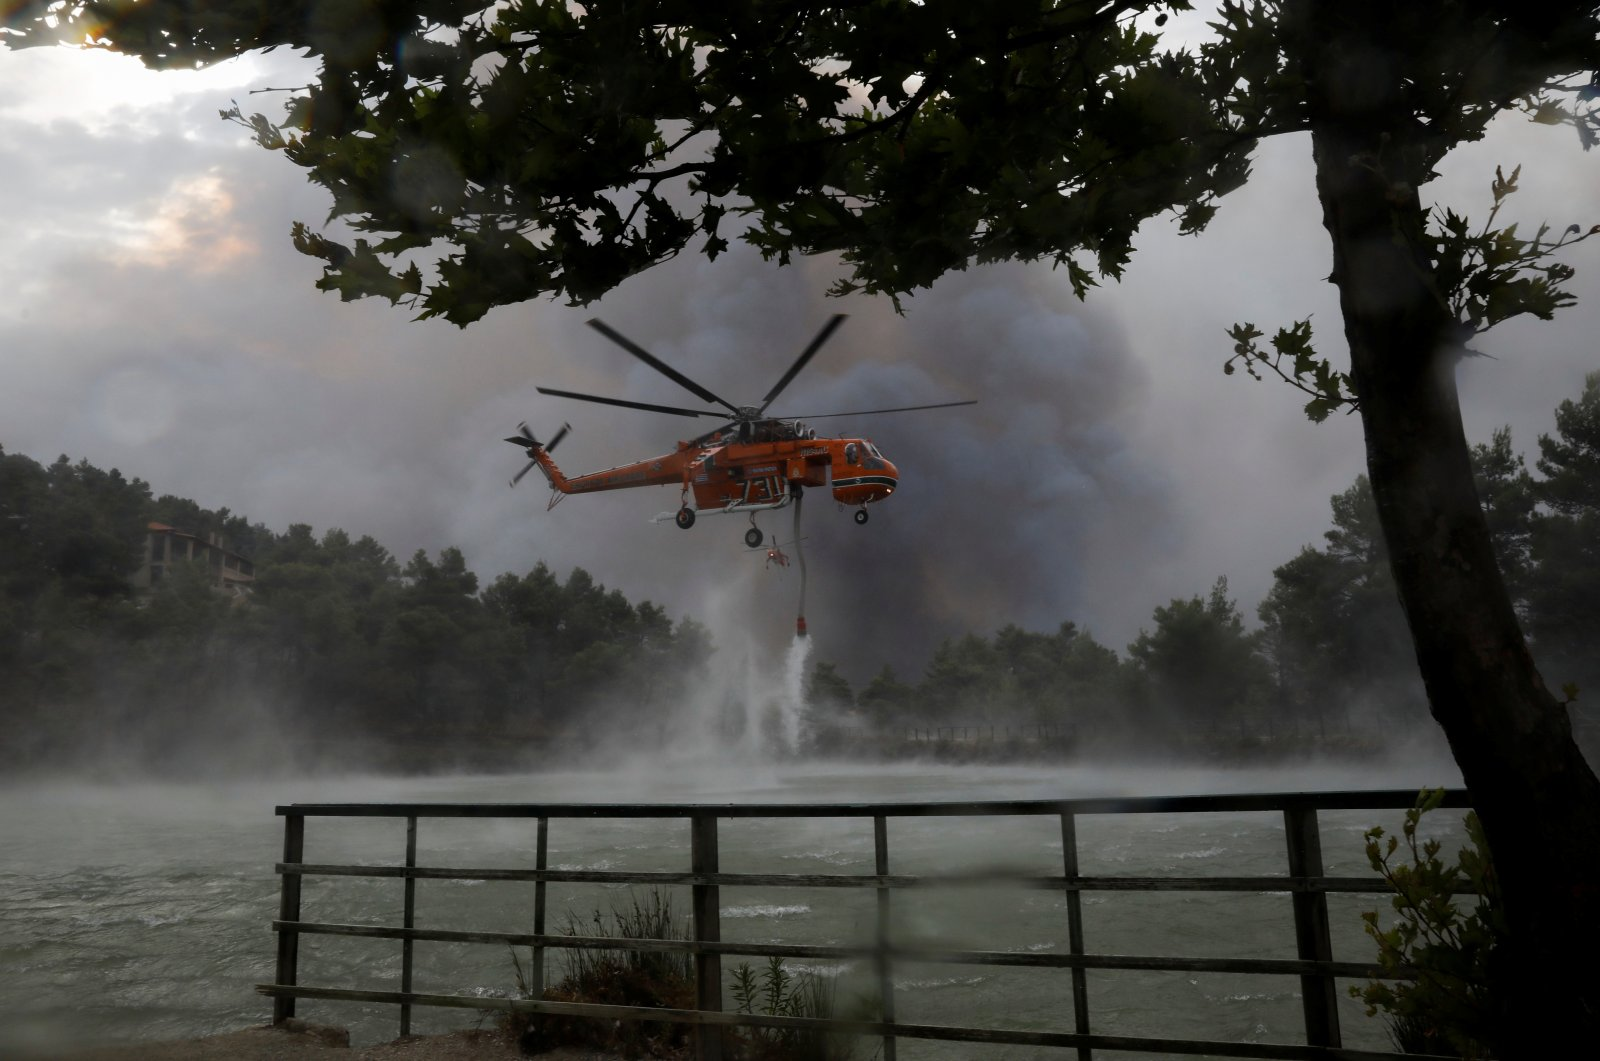 A firefighting helicopter is filled with water from Beletsi Lake as a wildfire erupts near the village of Ippokratios Politia, north of Athens, Greece, Aug. 6, 2021. (Reuters Photo)